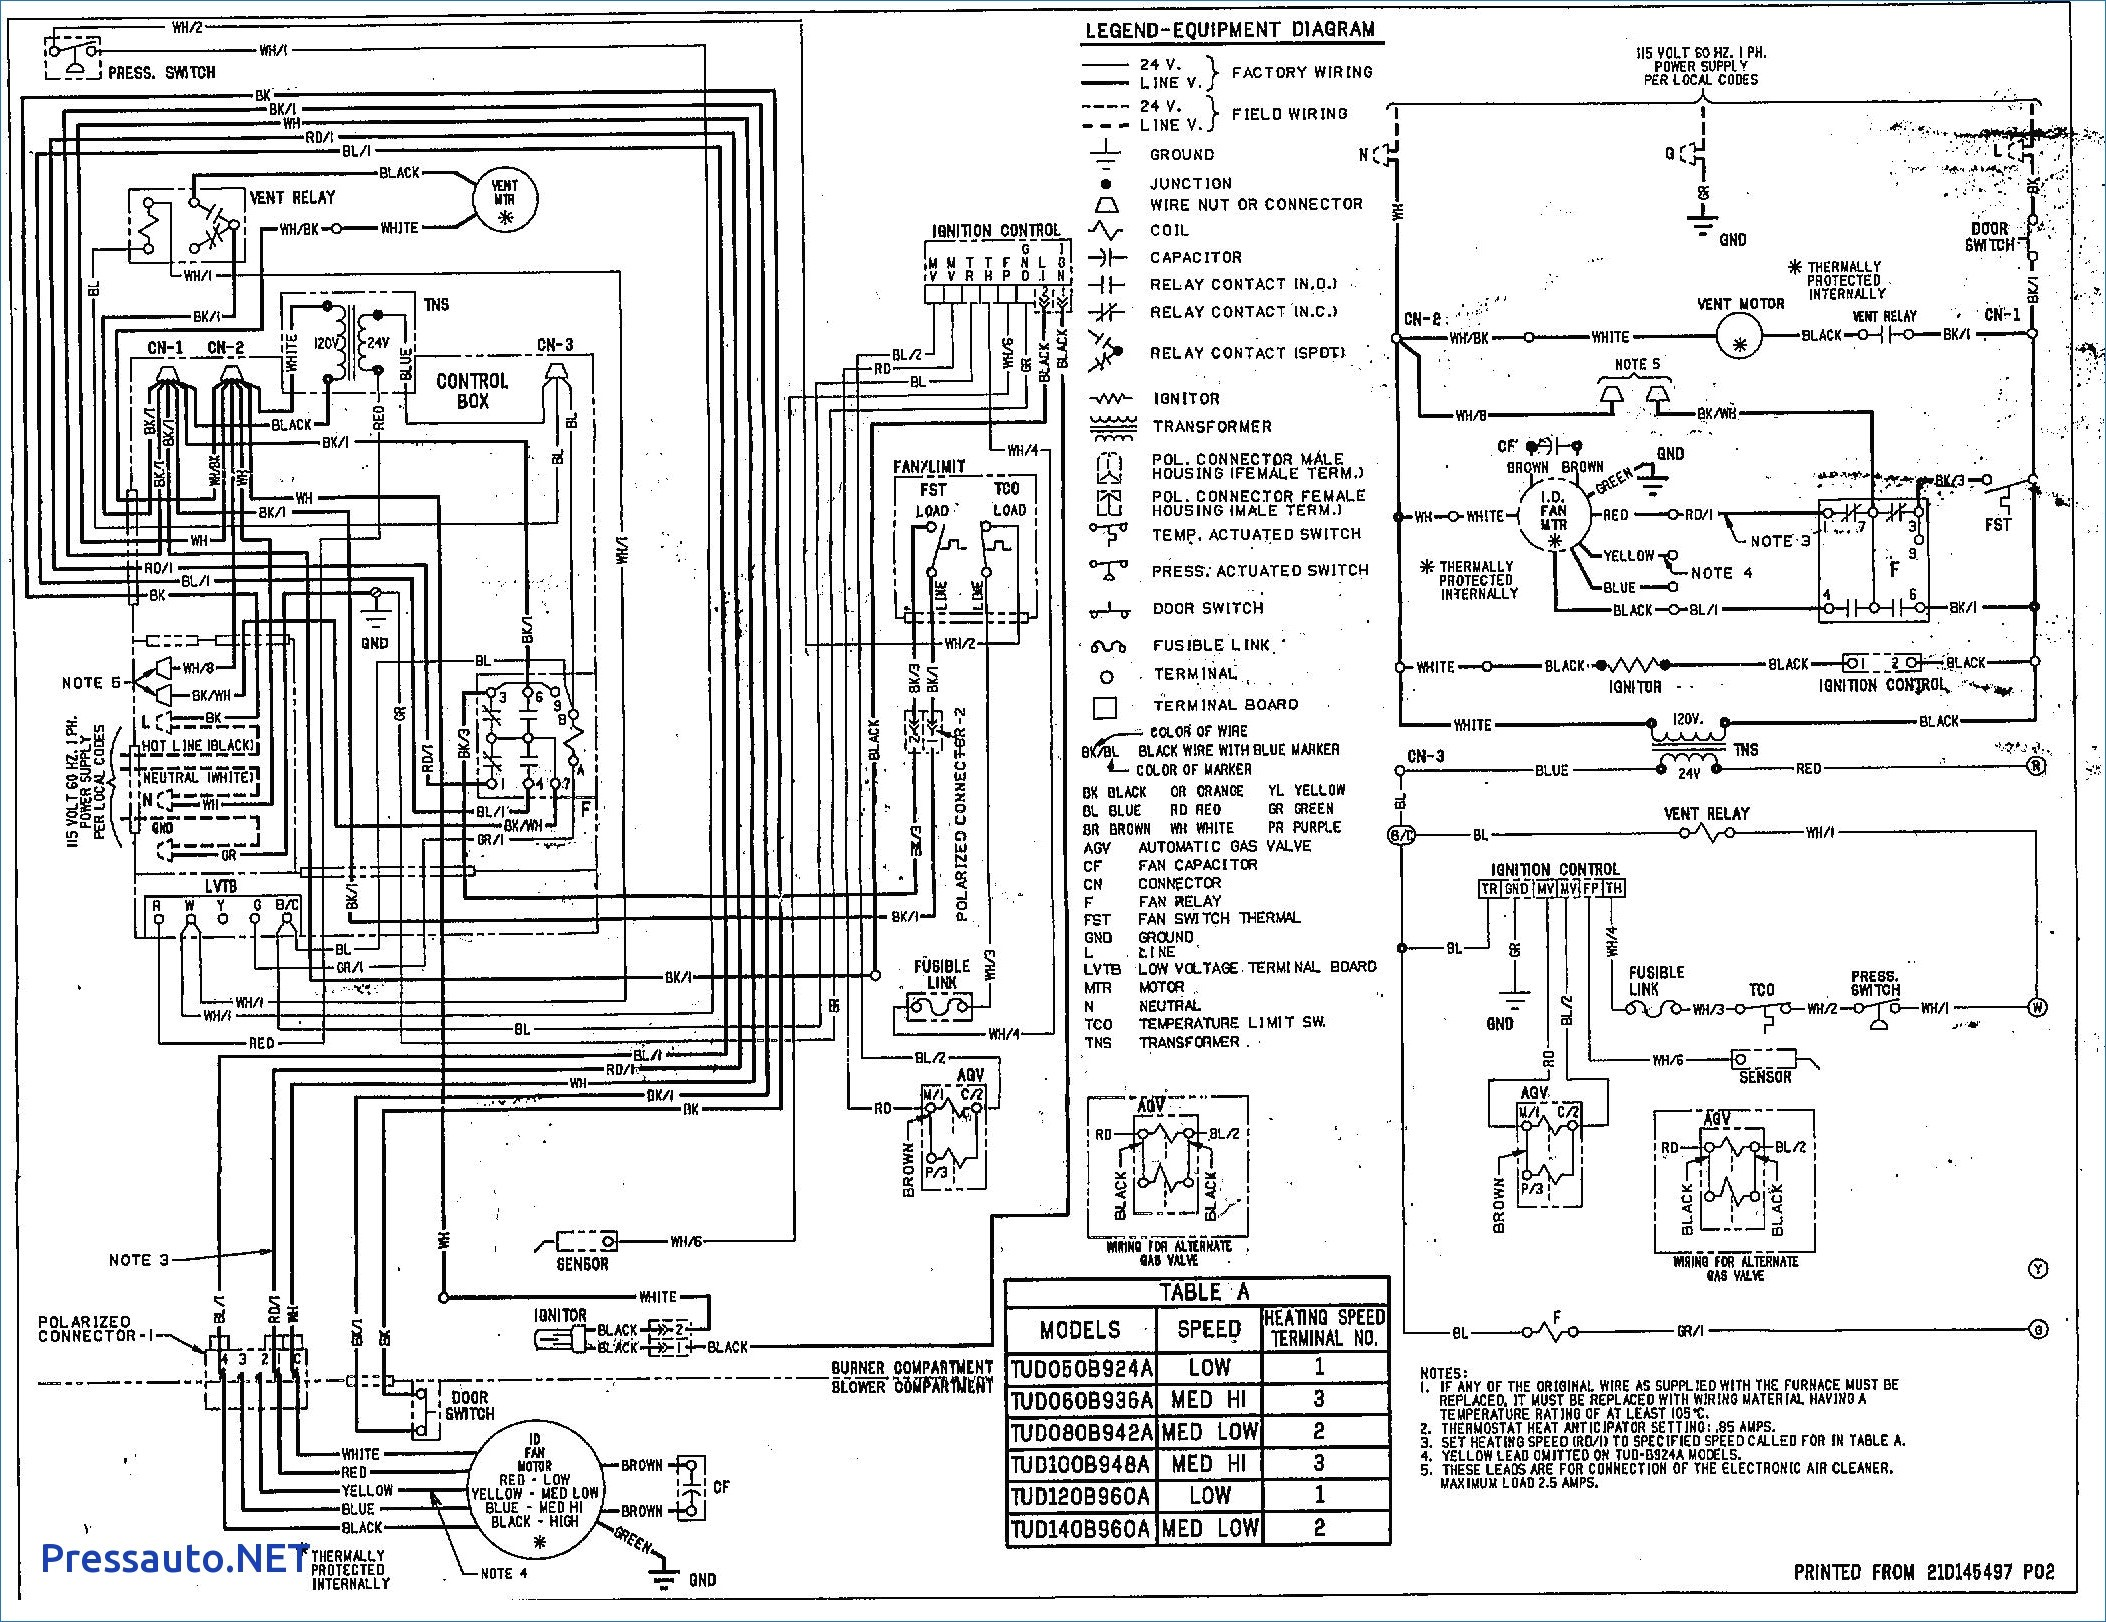 Trane Voyager Wiring Diagram Images And Photos Tfd601c40gbc Diagrams Model Inspirational Image